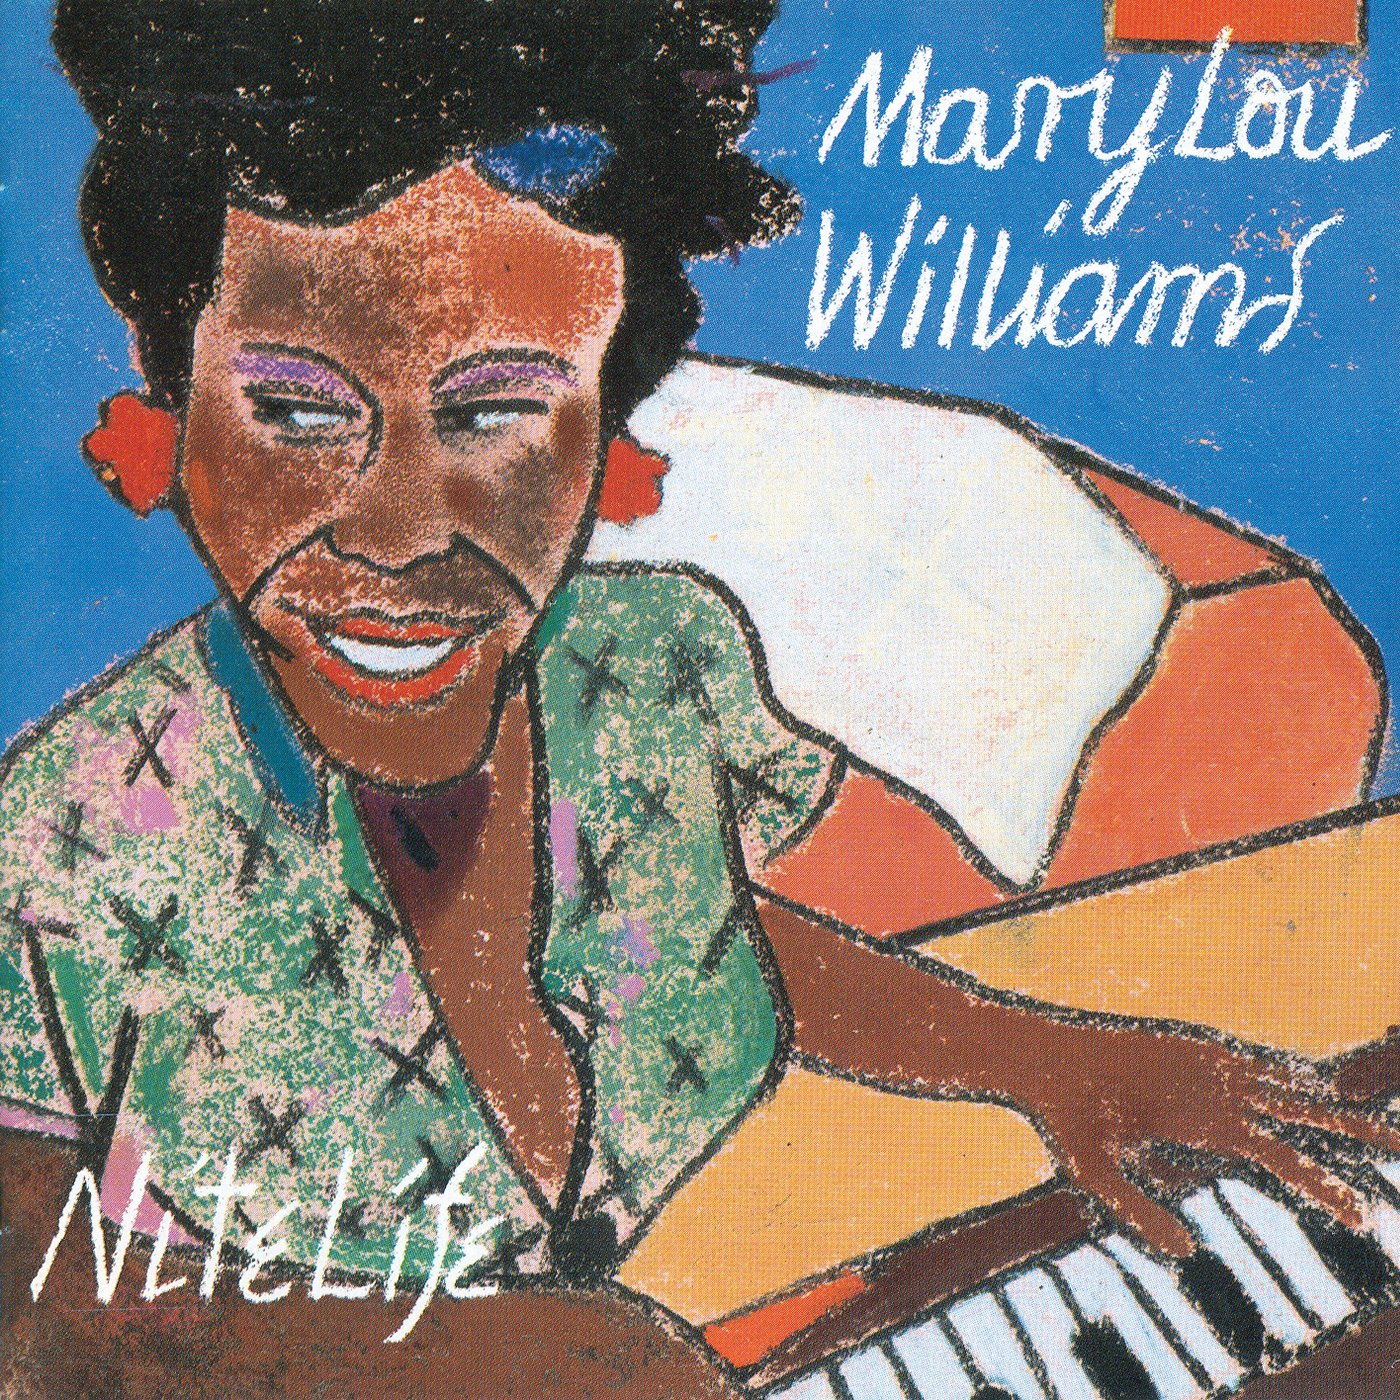 MARY LOU WILLIAMS - NiteLife - Amazon.com Music